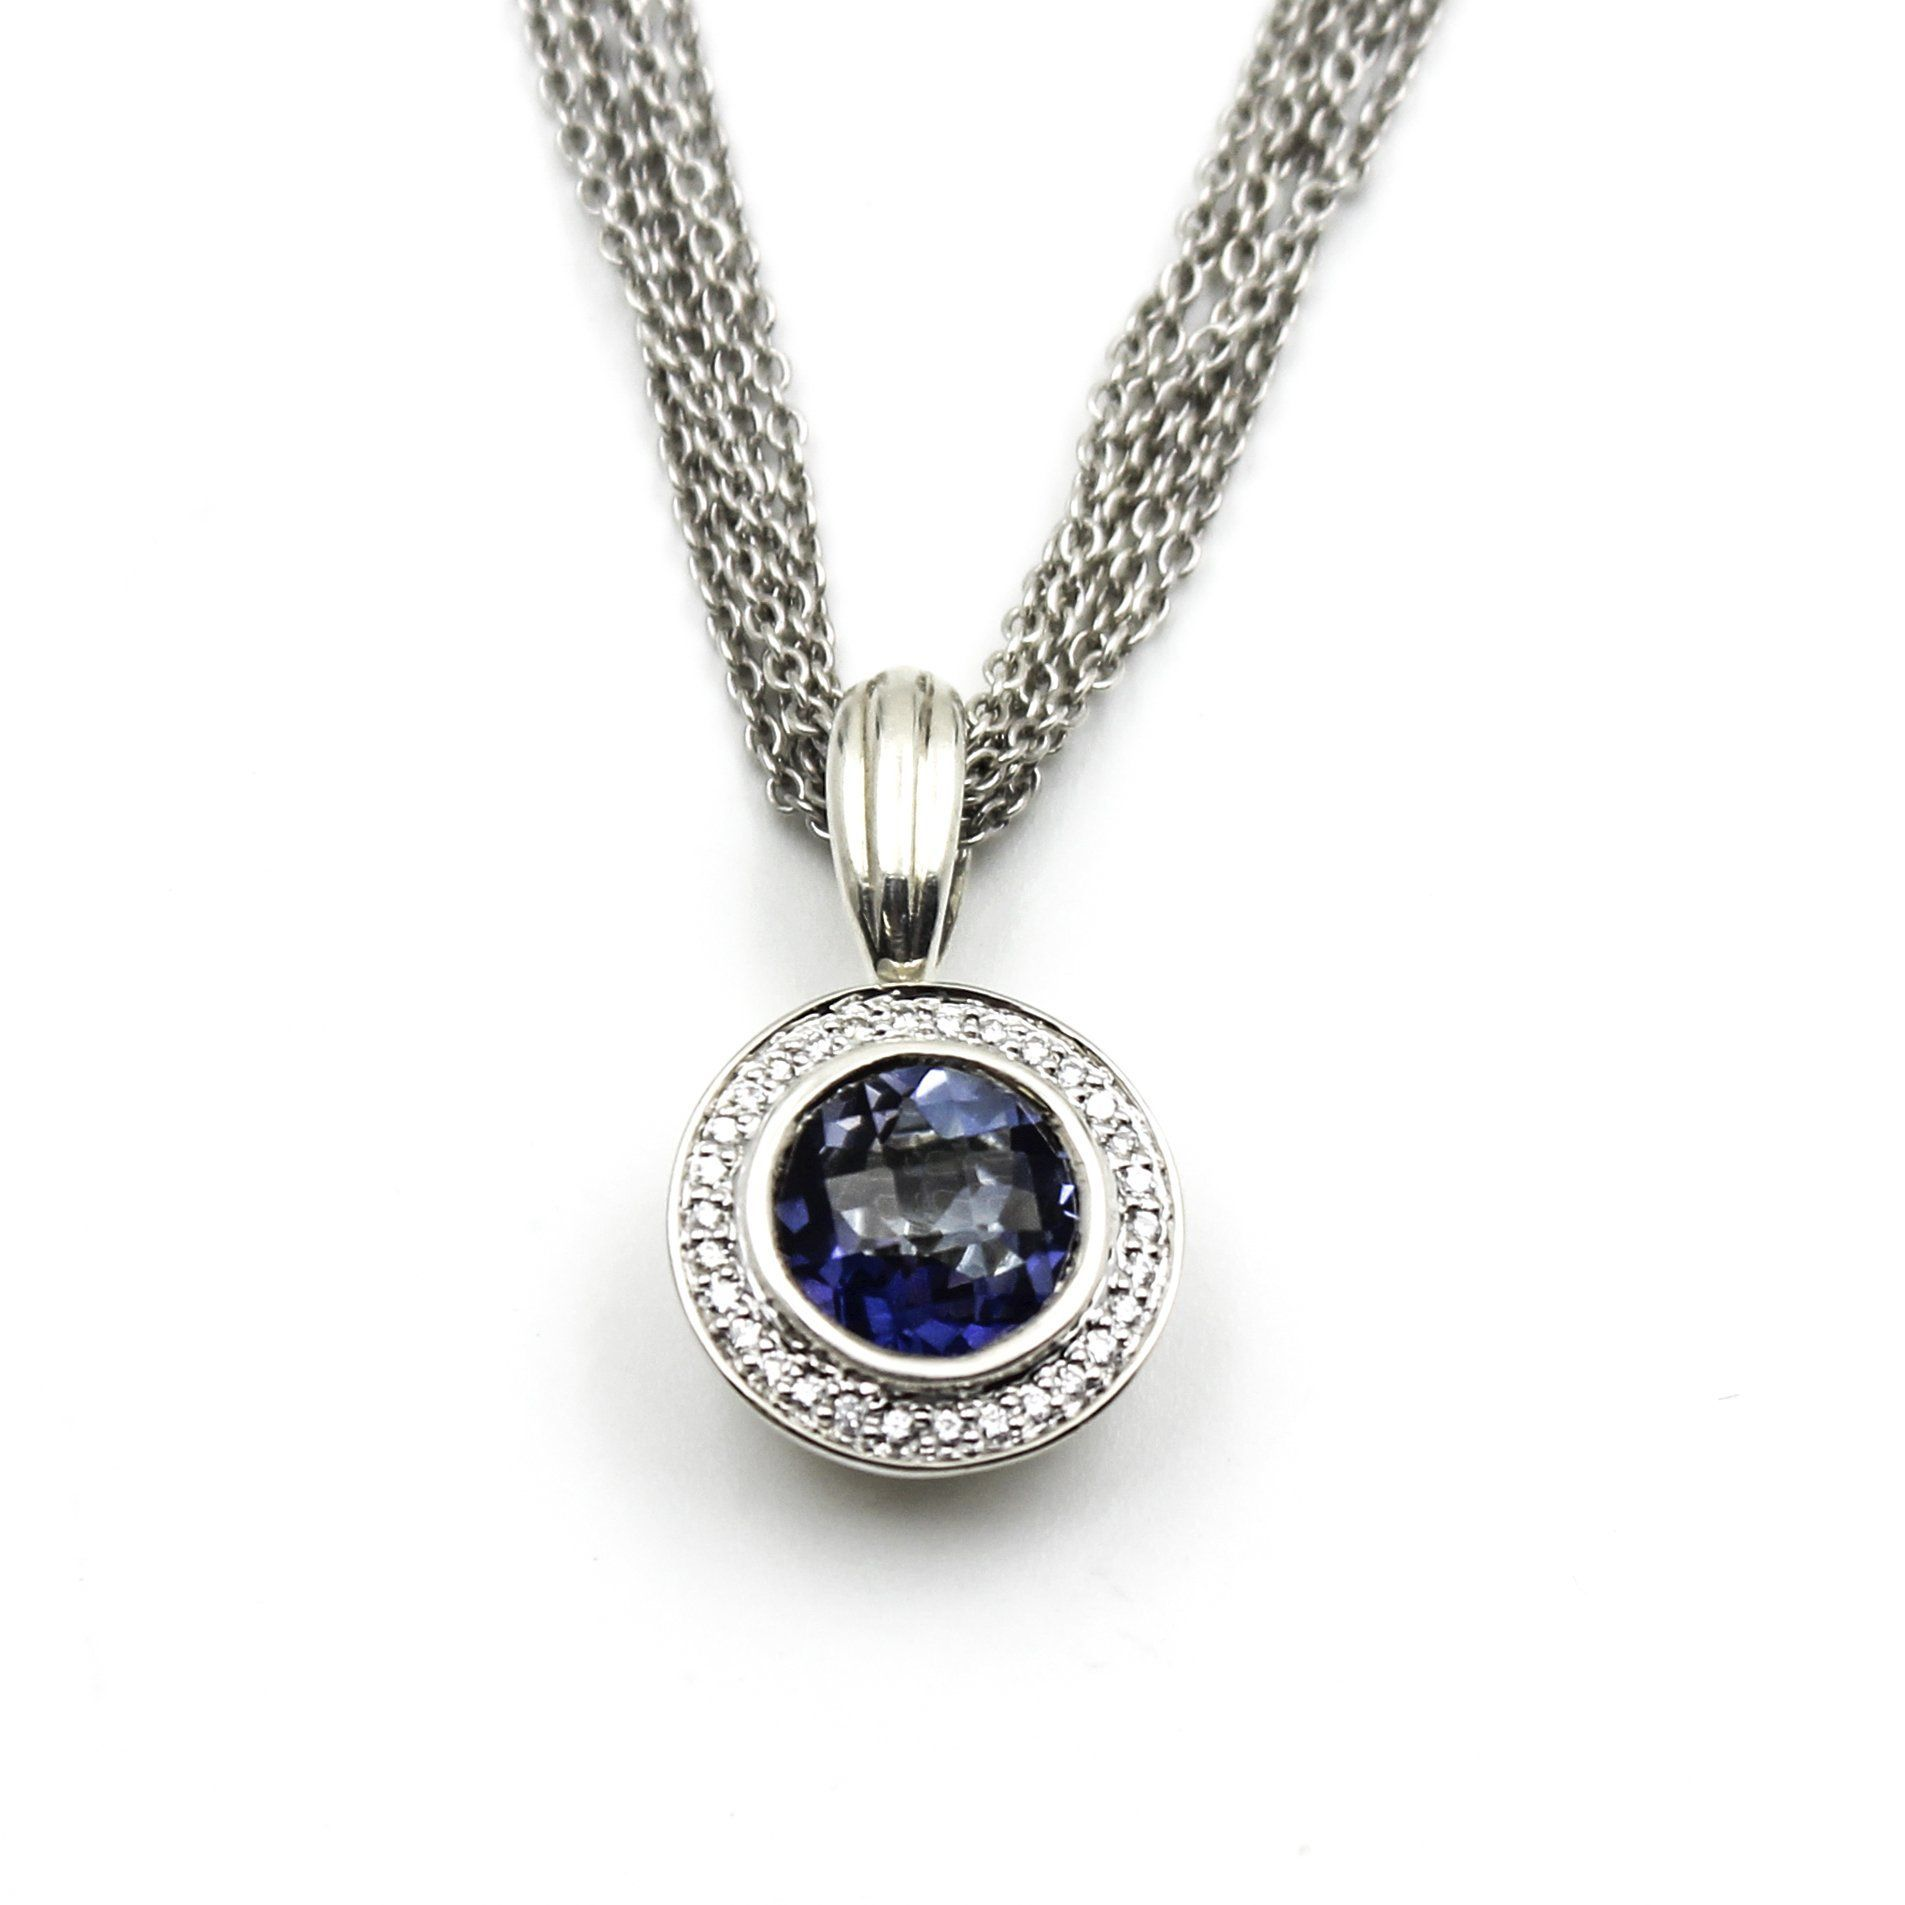 Charles krypell blue quartz diamond pendant necklace in k gold